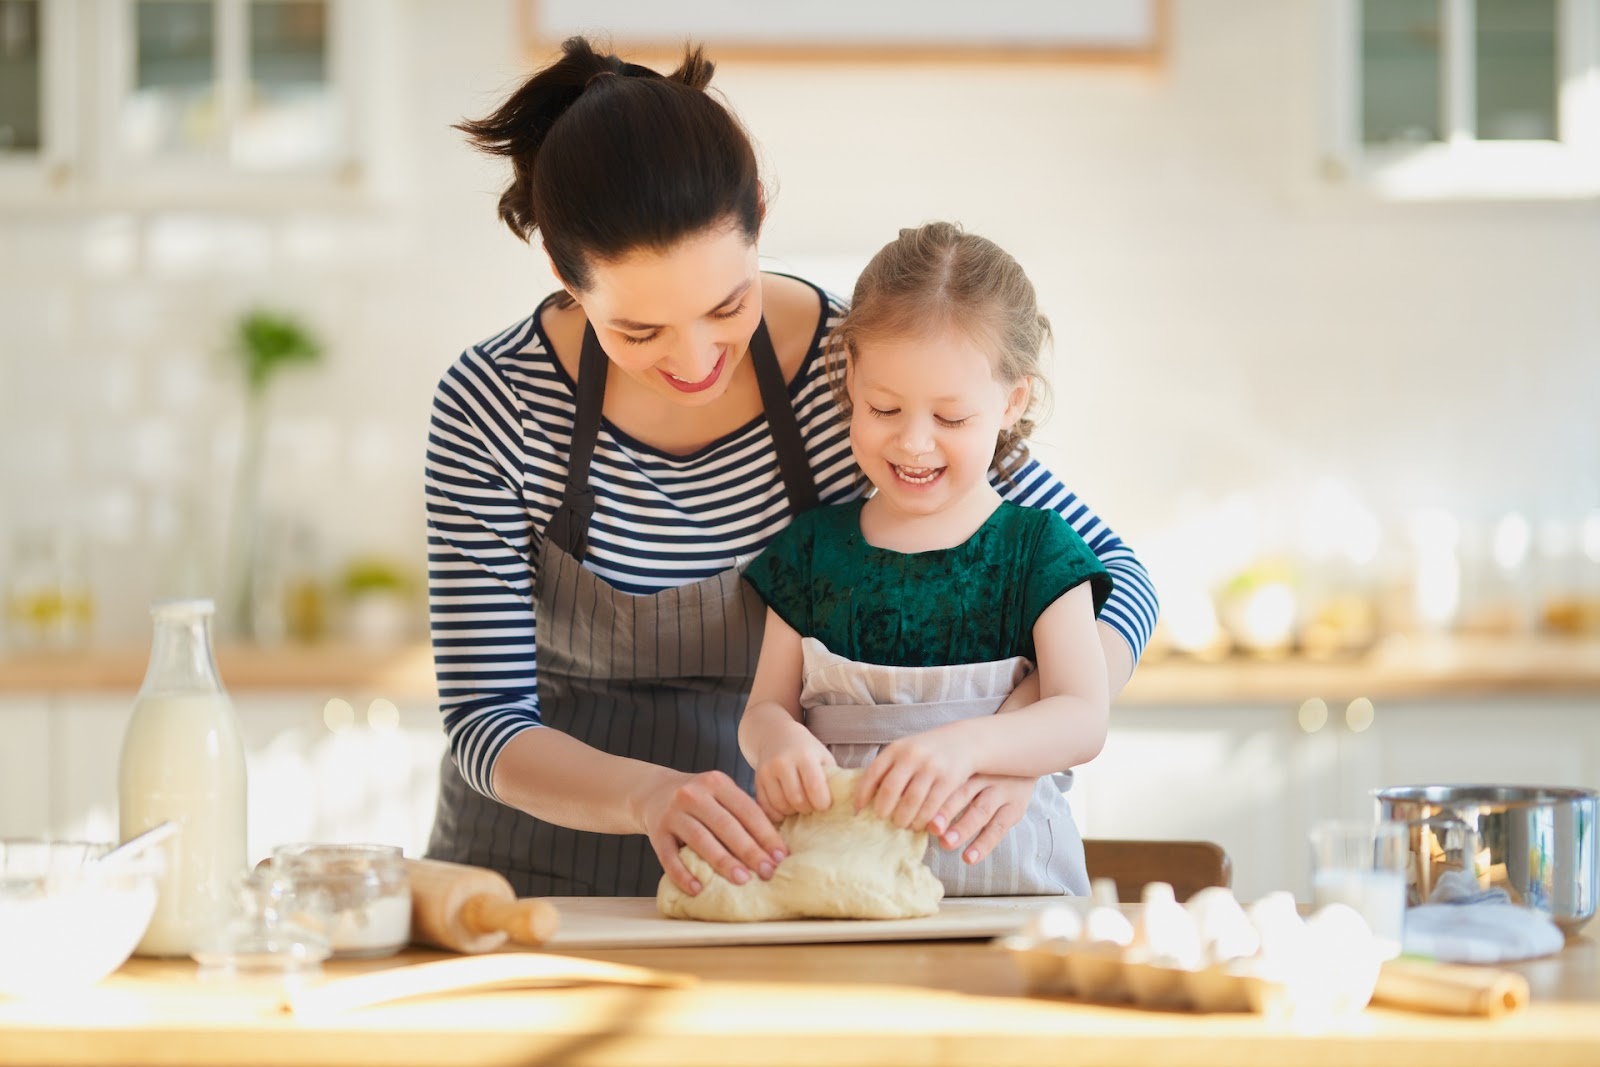 Mom and daughter baking together